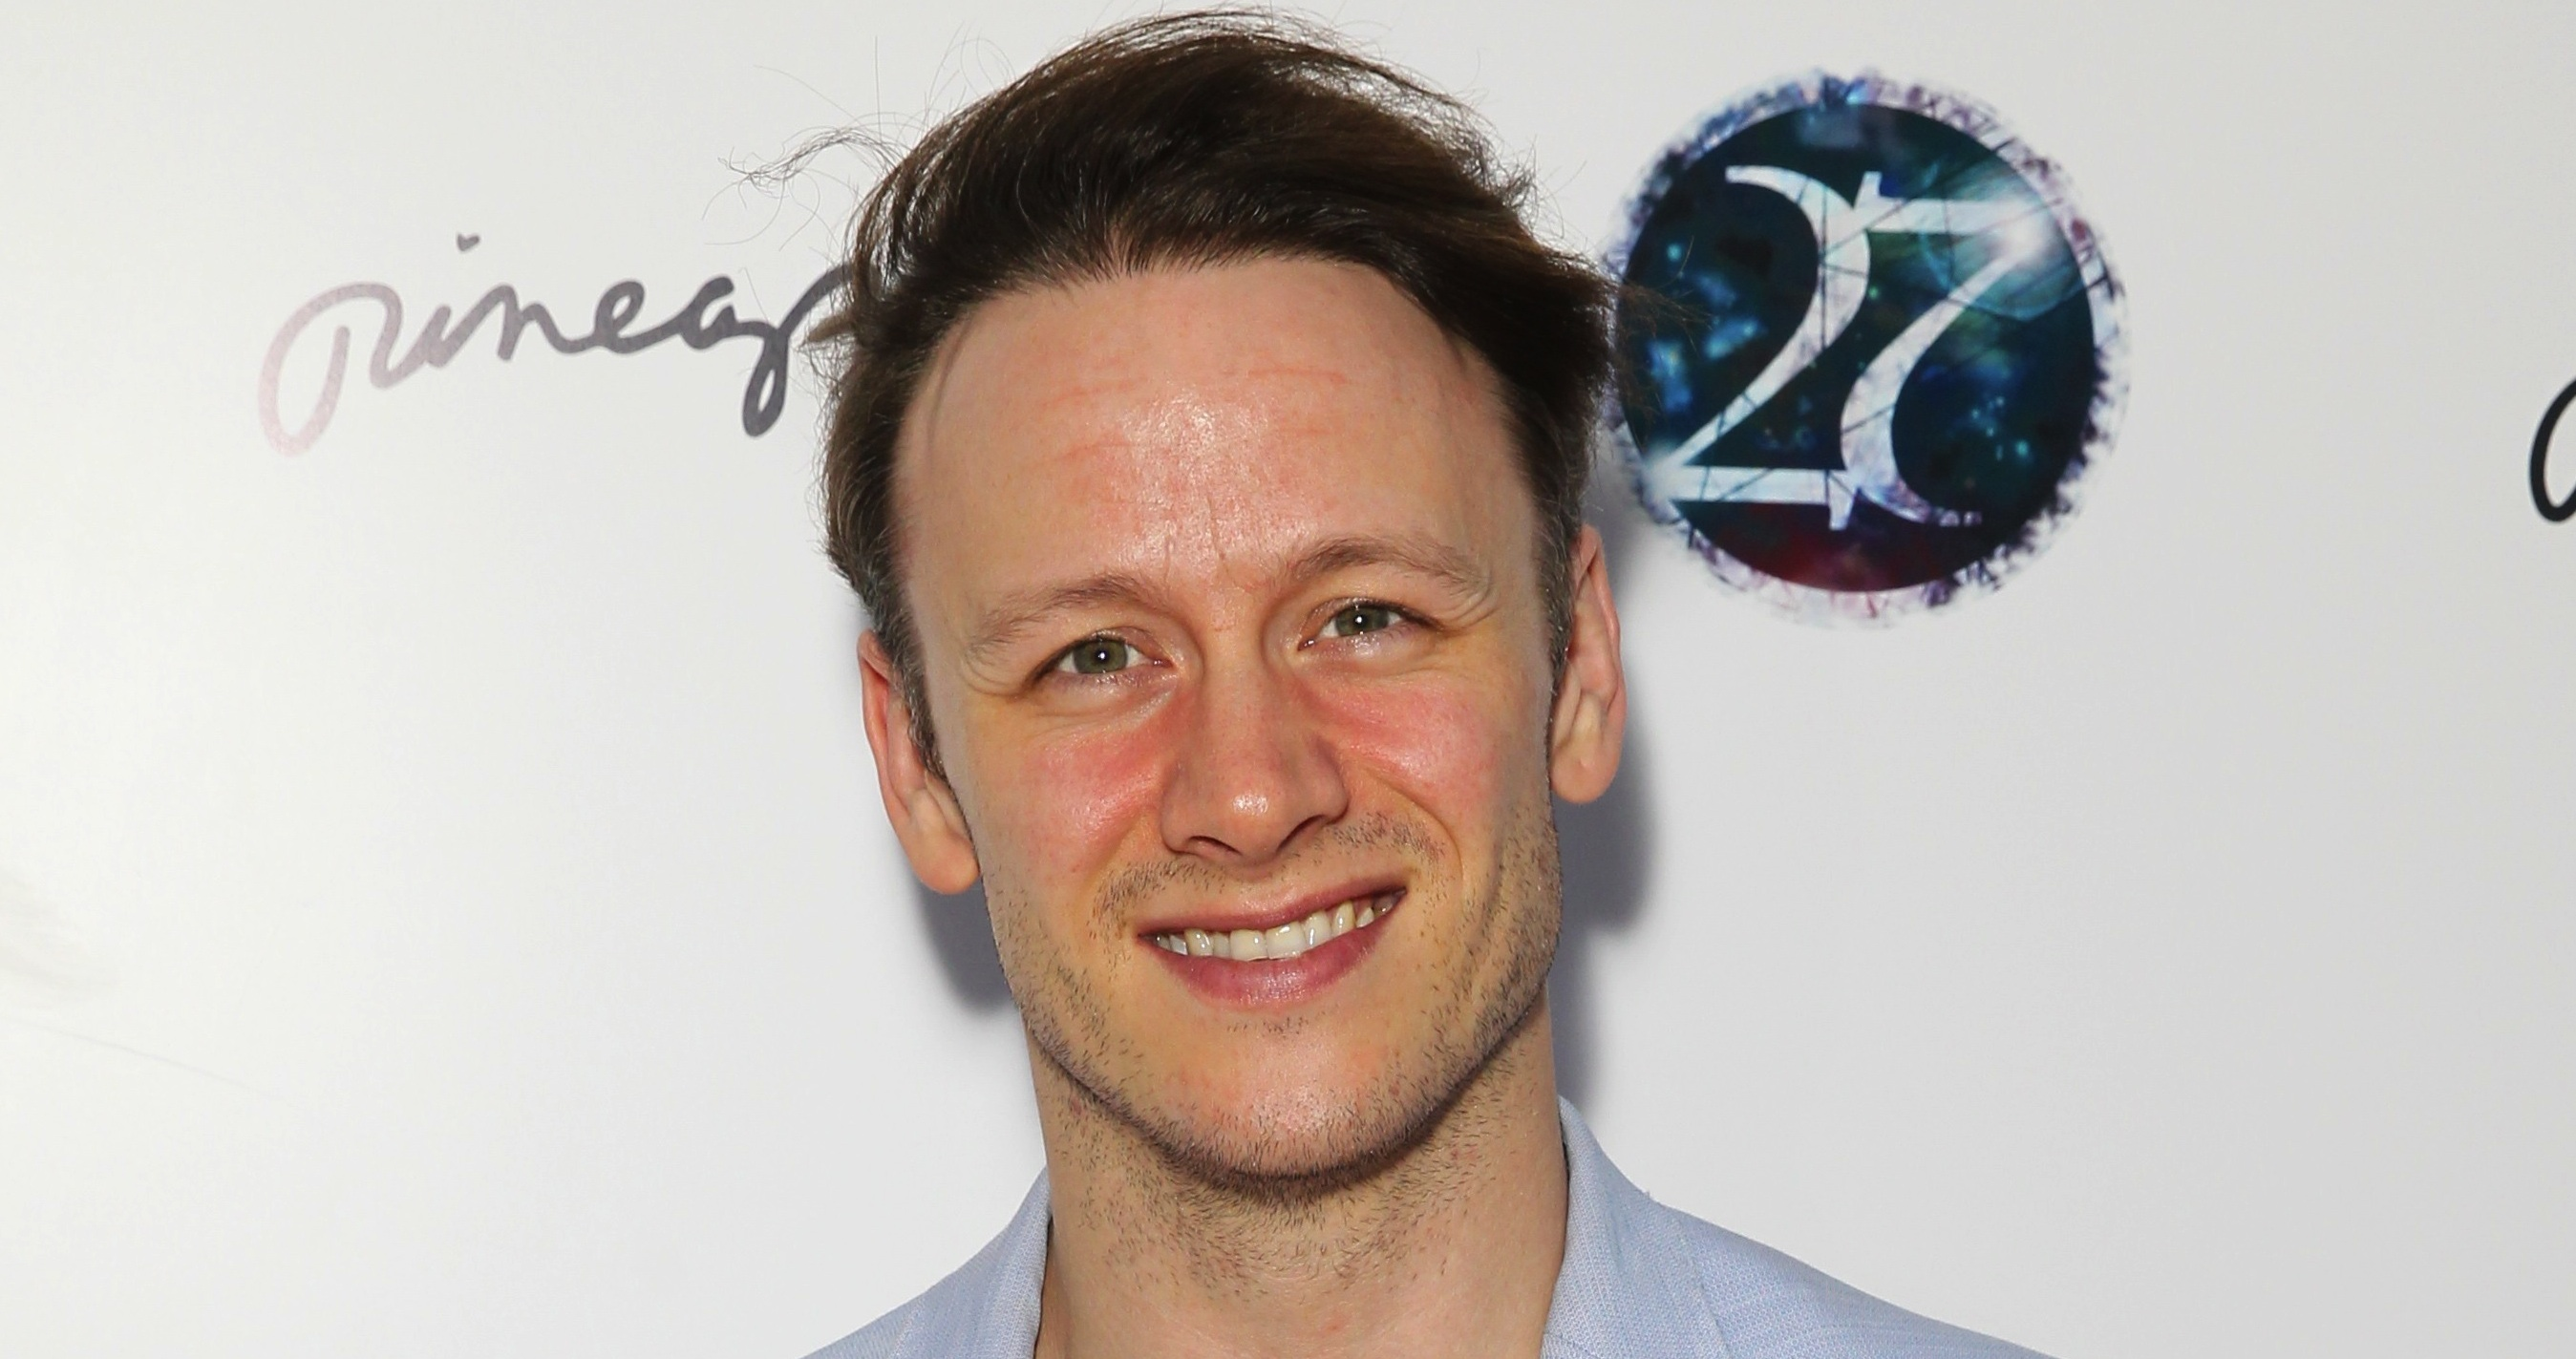 Strictly Come Dancing fans concerned as Kevin Clifton shares post about mental health